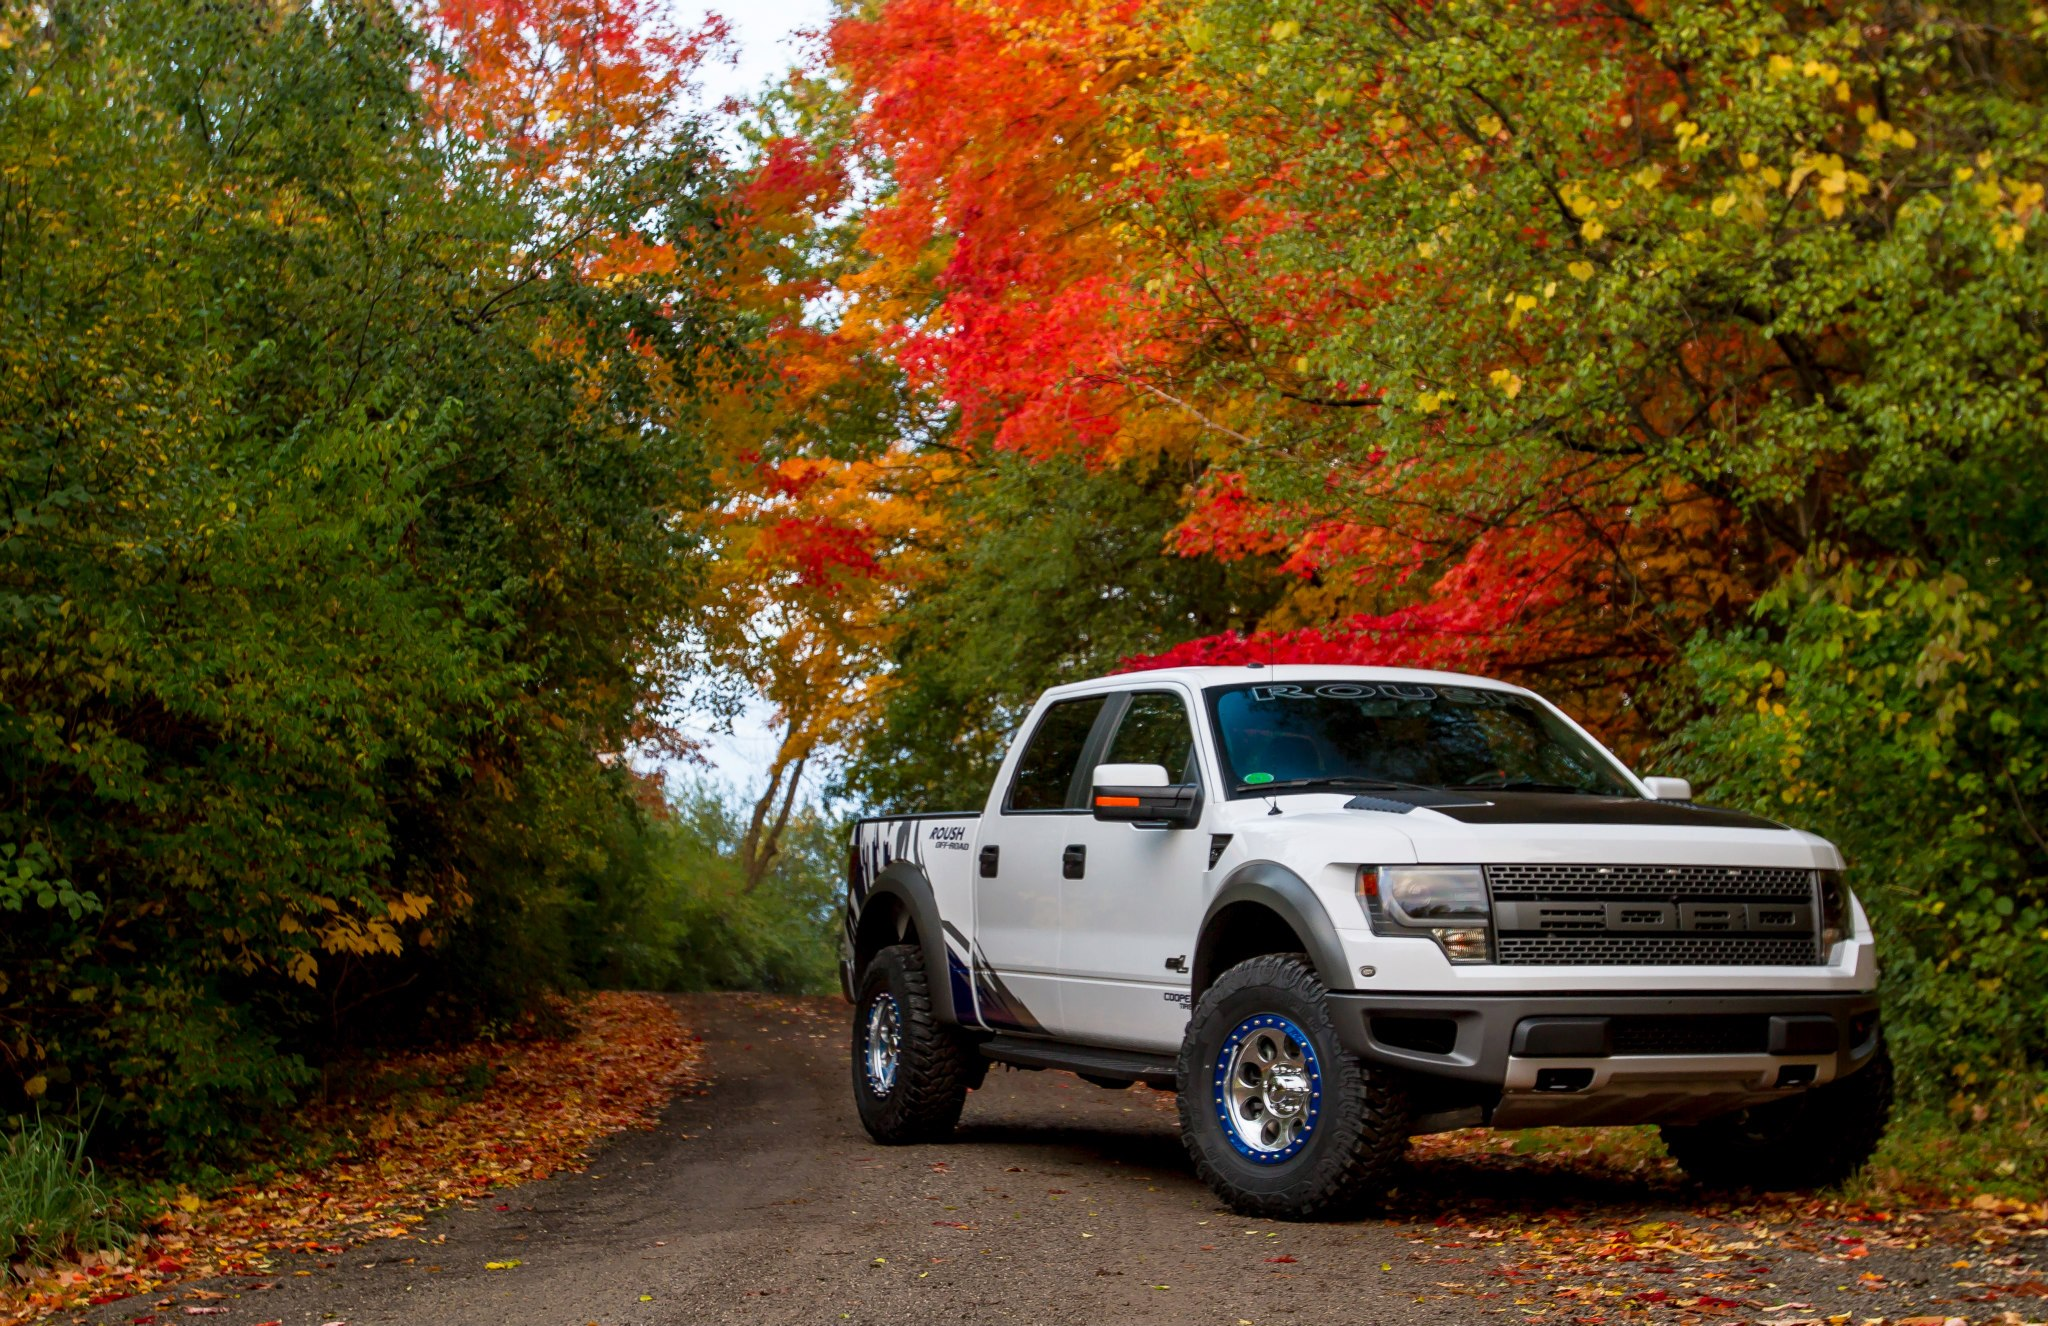 Ford raptor phase 2 full hd wallpaper and background image vehicles ford raptor phase 2 wallpaper voltagebd Choice Image